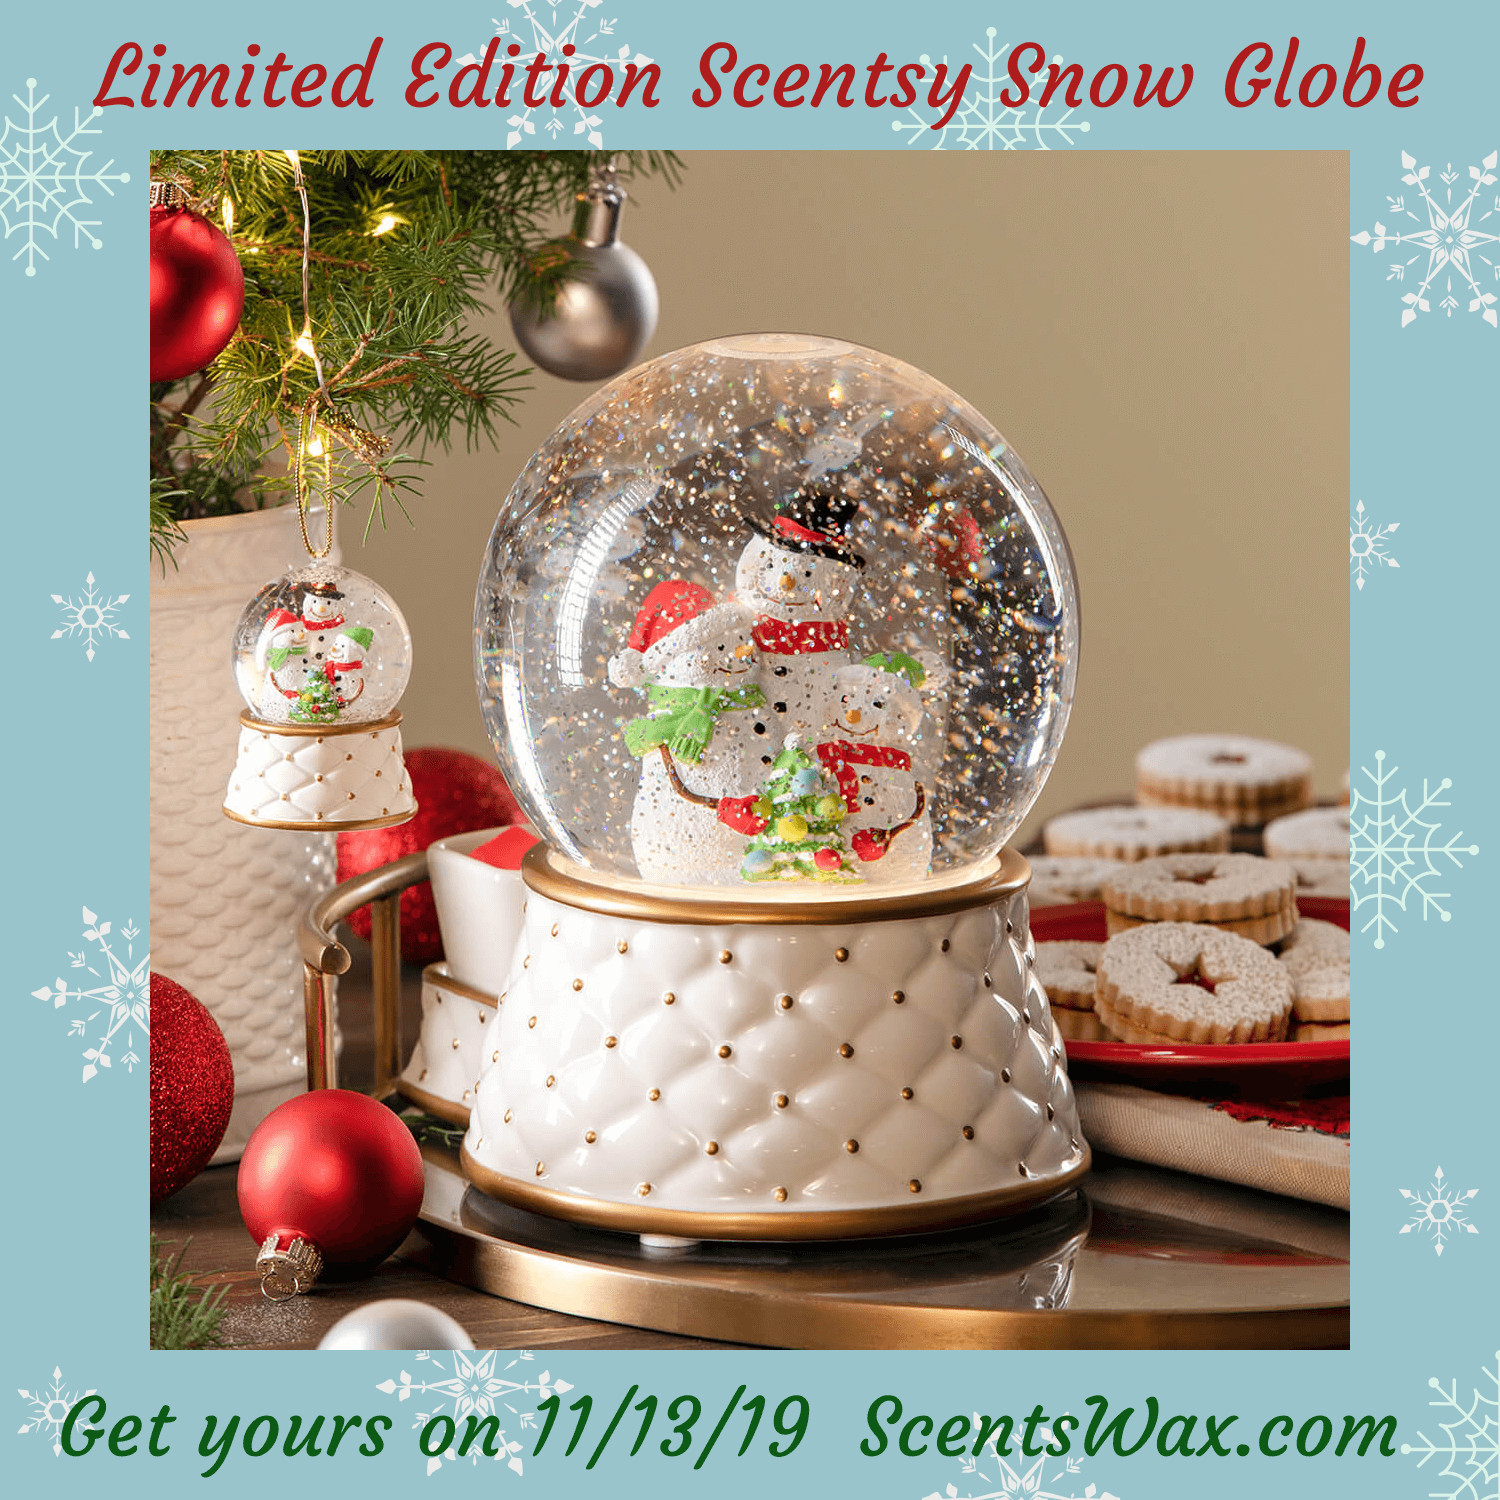 Scentsy Snow Globe Warmer 2019 Holiday Collection